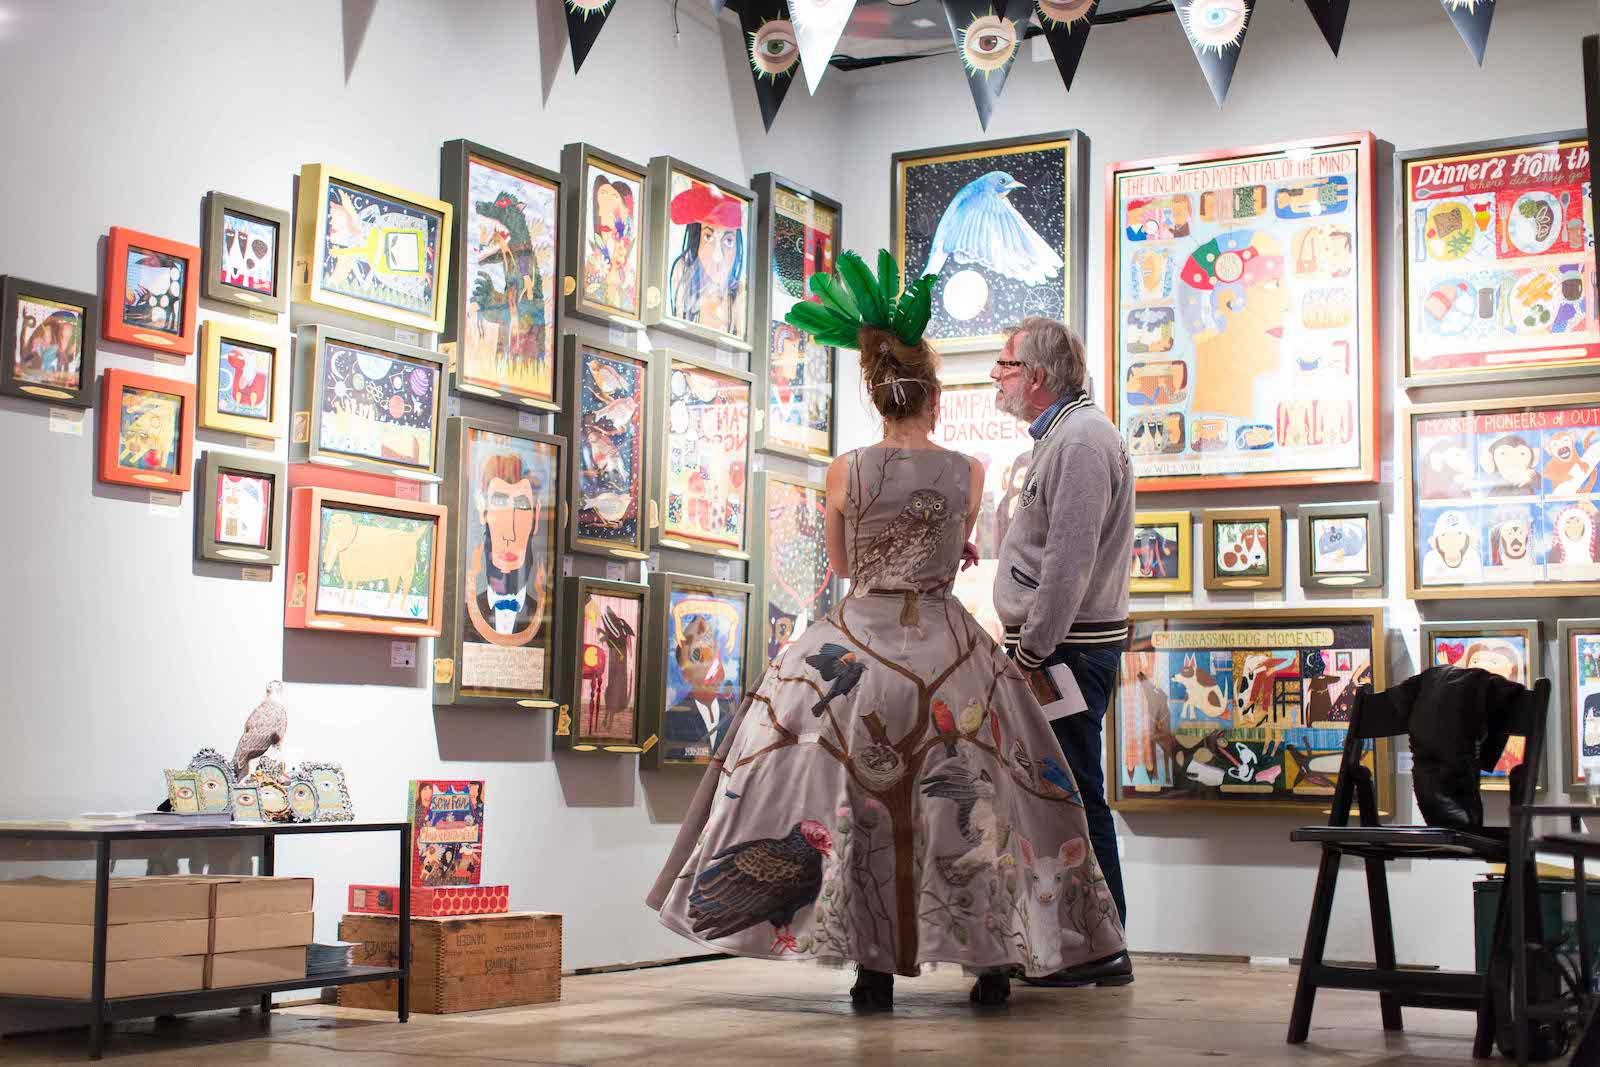 Man and woman look at art on wall at fair 2018